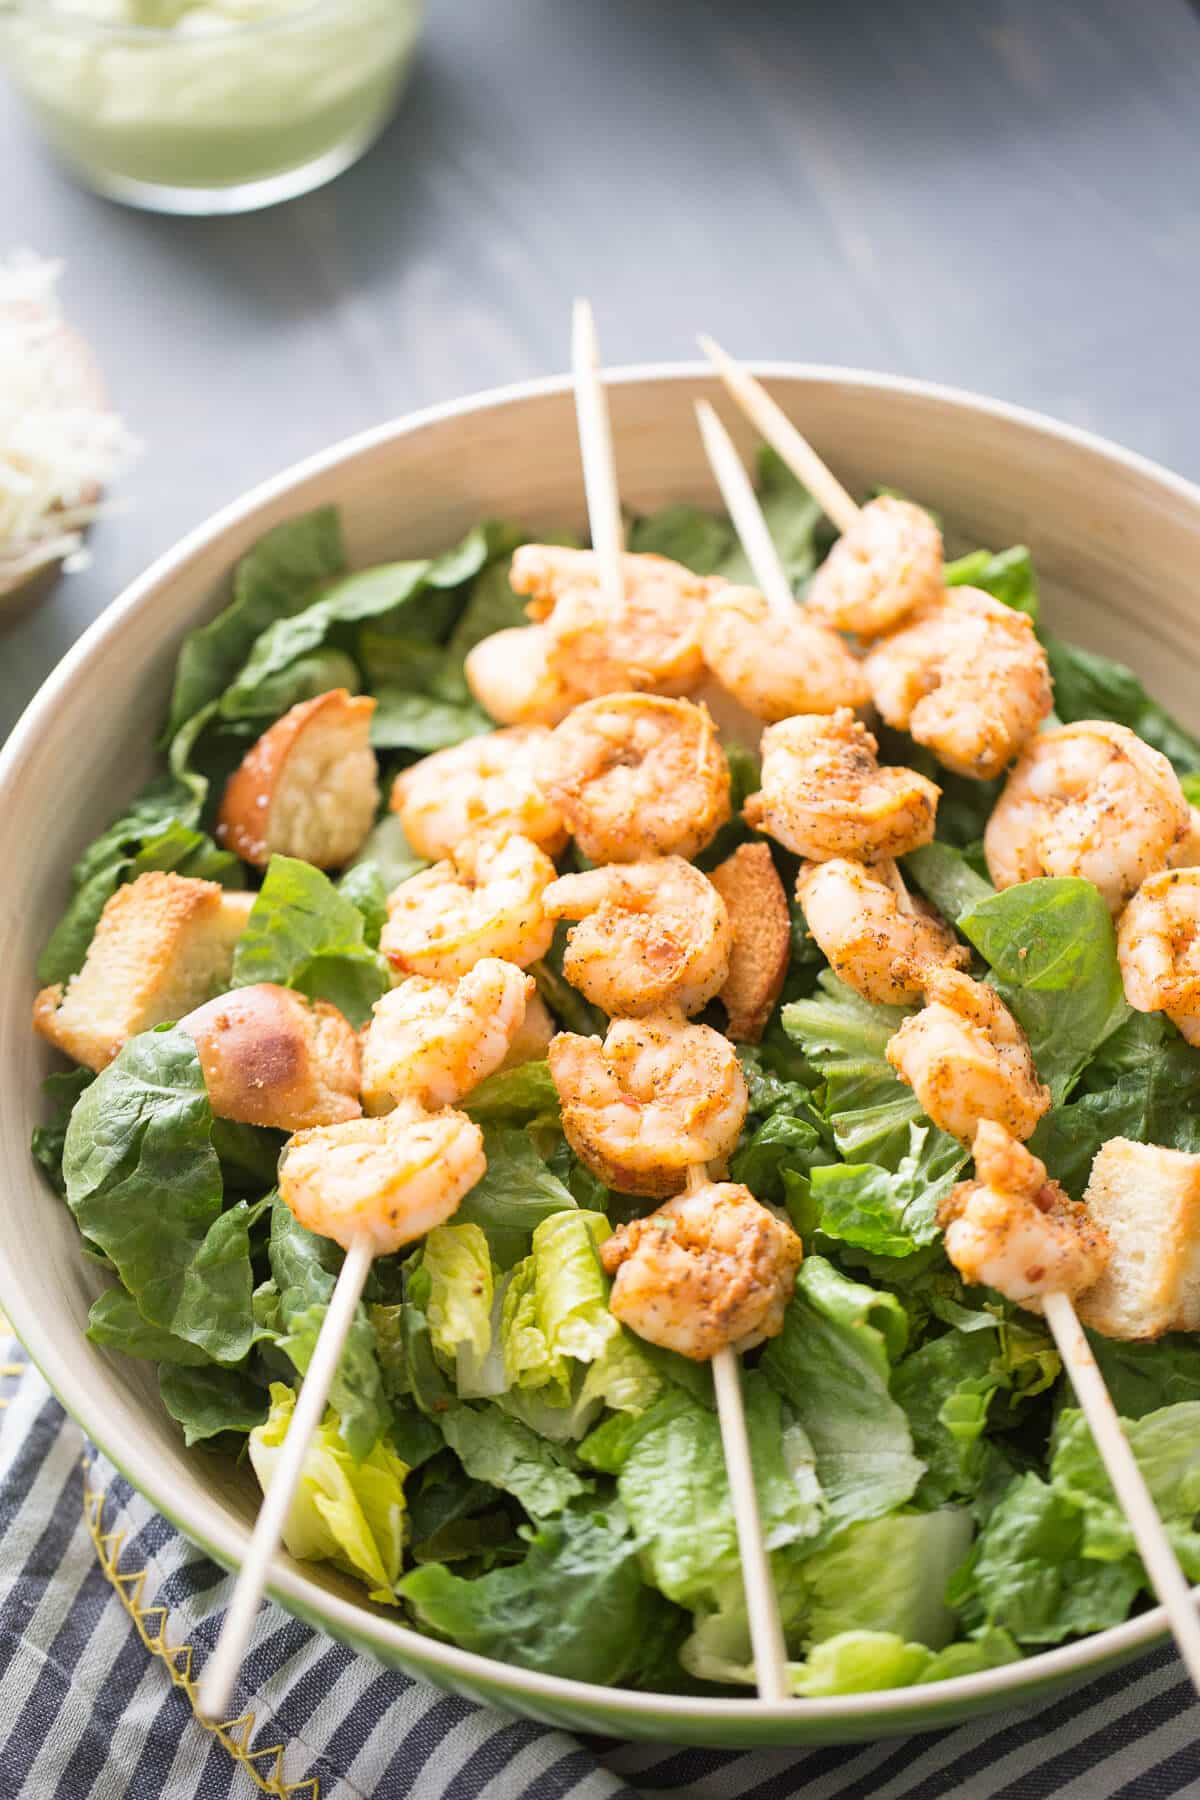 Crisp and cool lettuce is balanced by seasoned, grilled shrimp in this refreshing Shrimp Caesar Salad! Traditional Caesar salad dressing is replaced with an avocado dressing that adds just the right amount of creaminess to each bite!